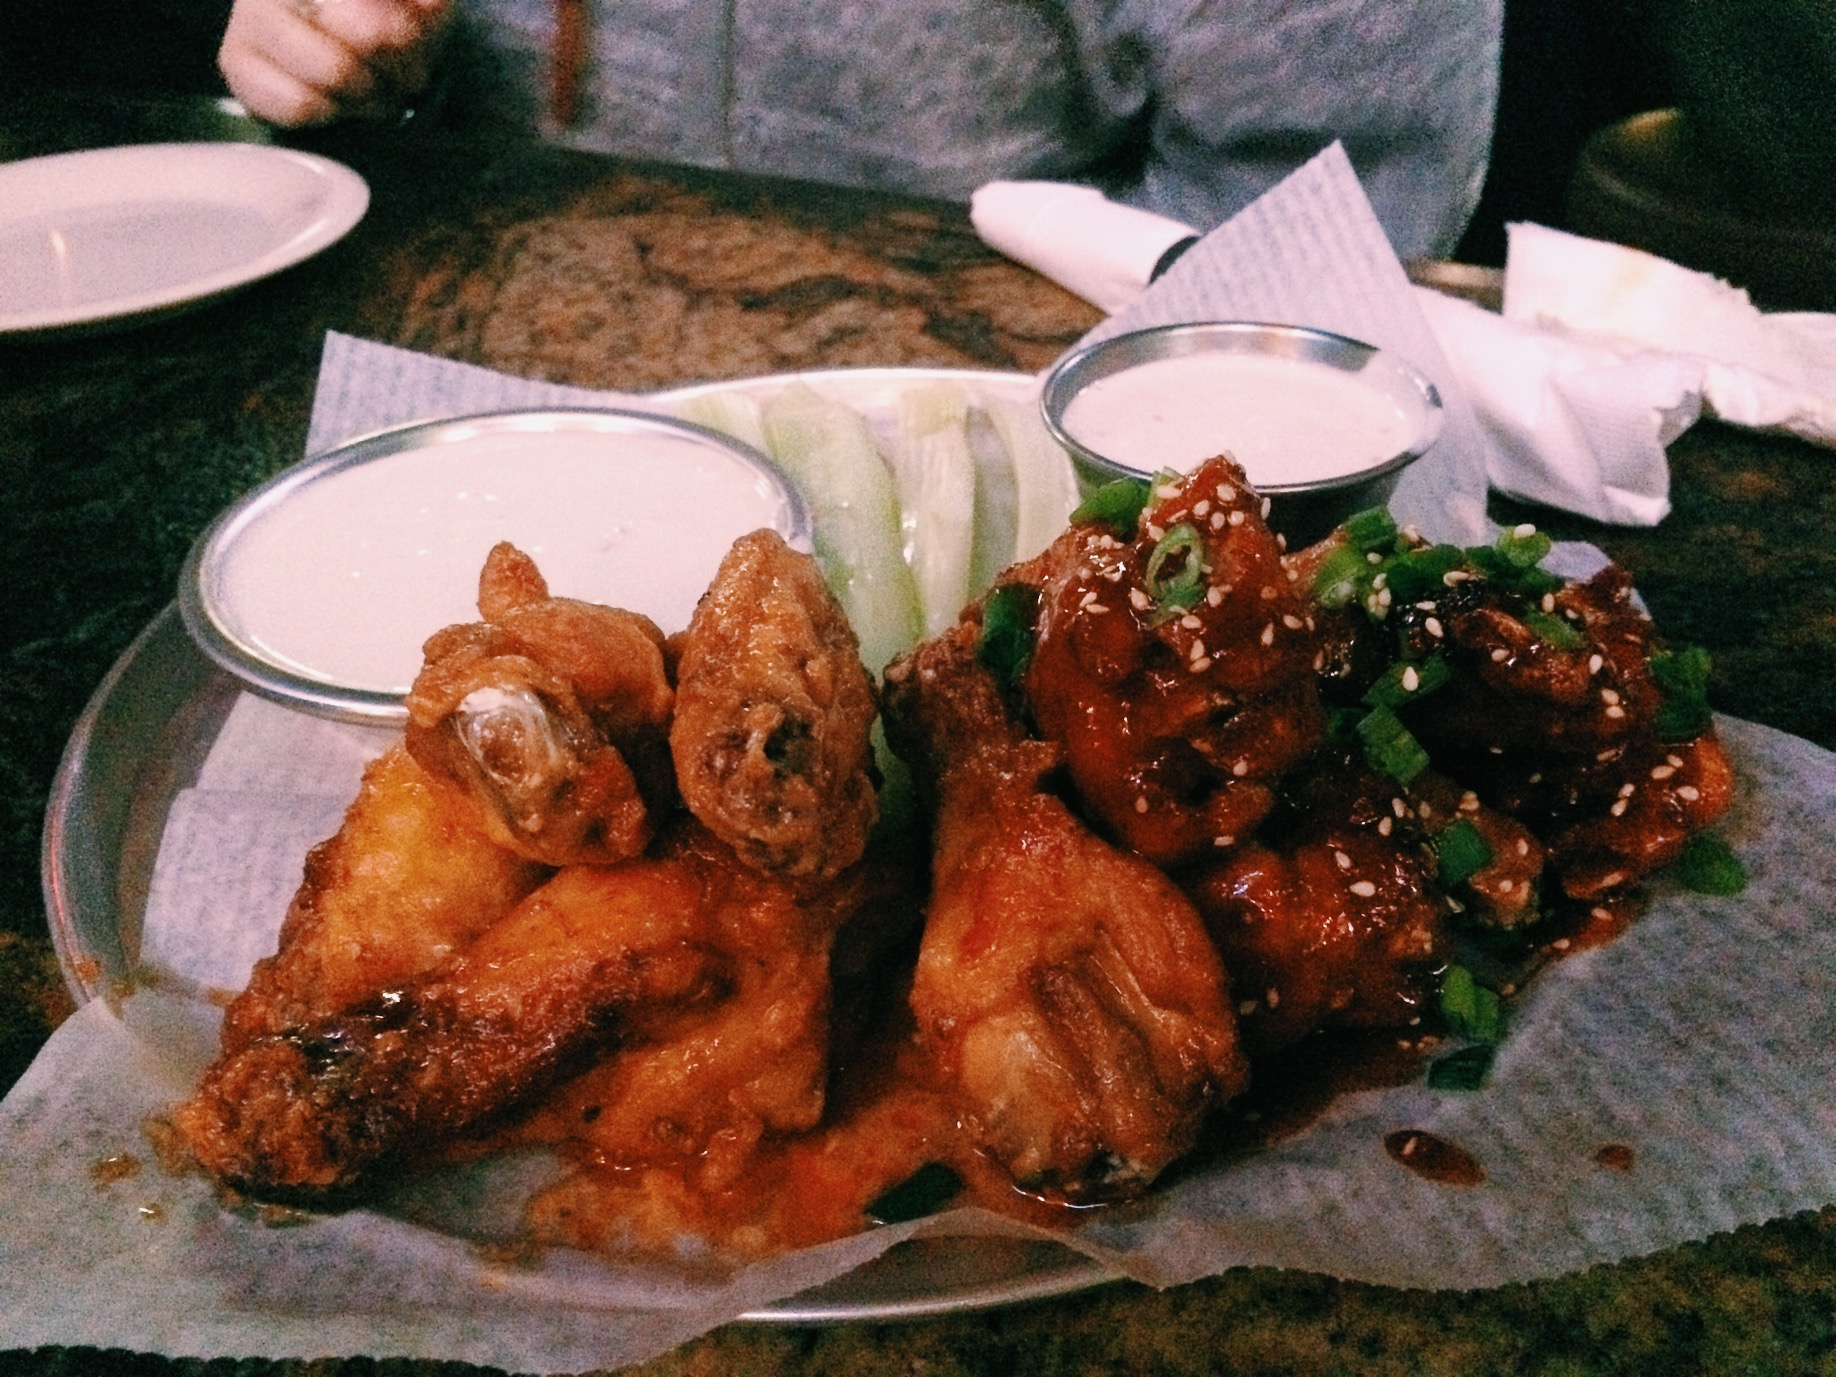 Buffalo wings and Korean Spicy wings. Buffalo was bland but the Korean Spice was pretty damn good.